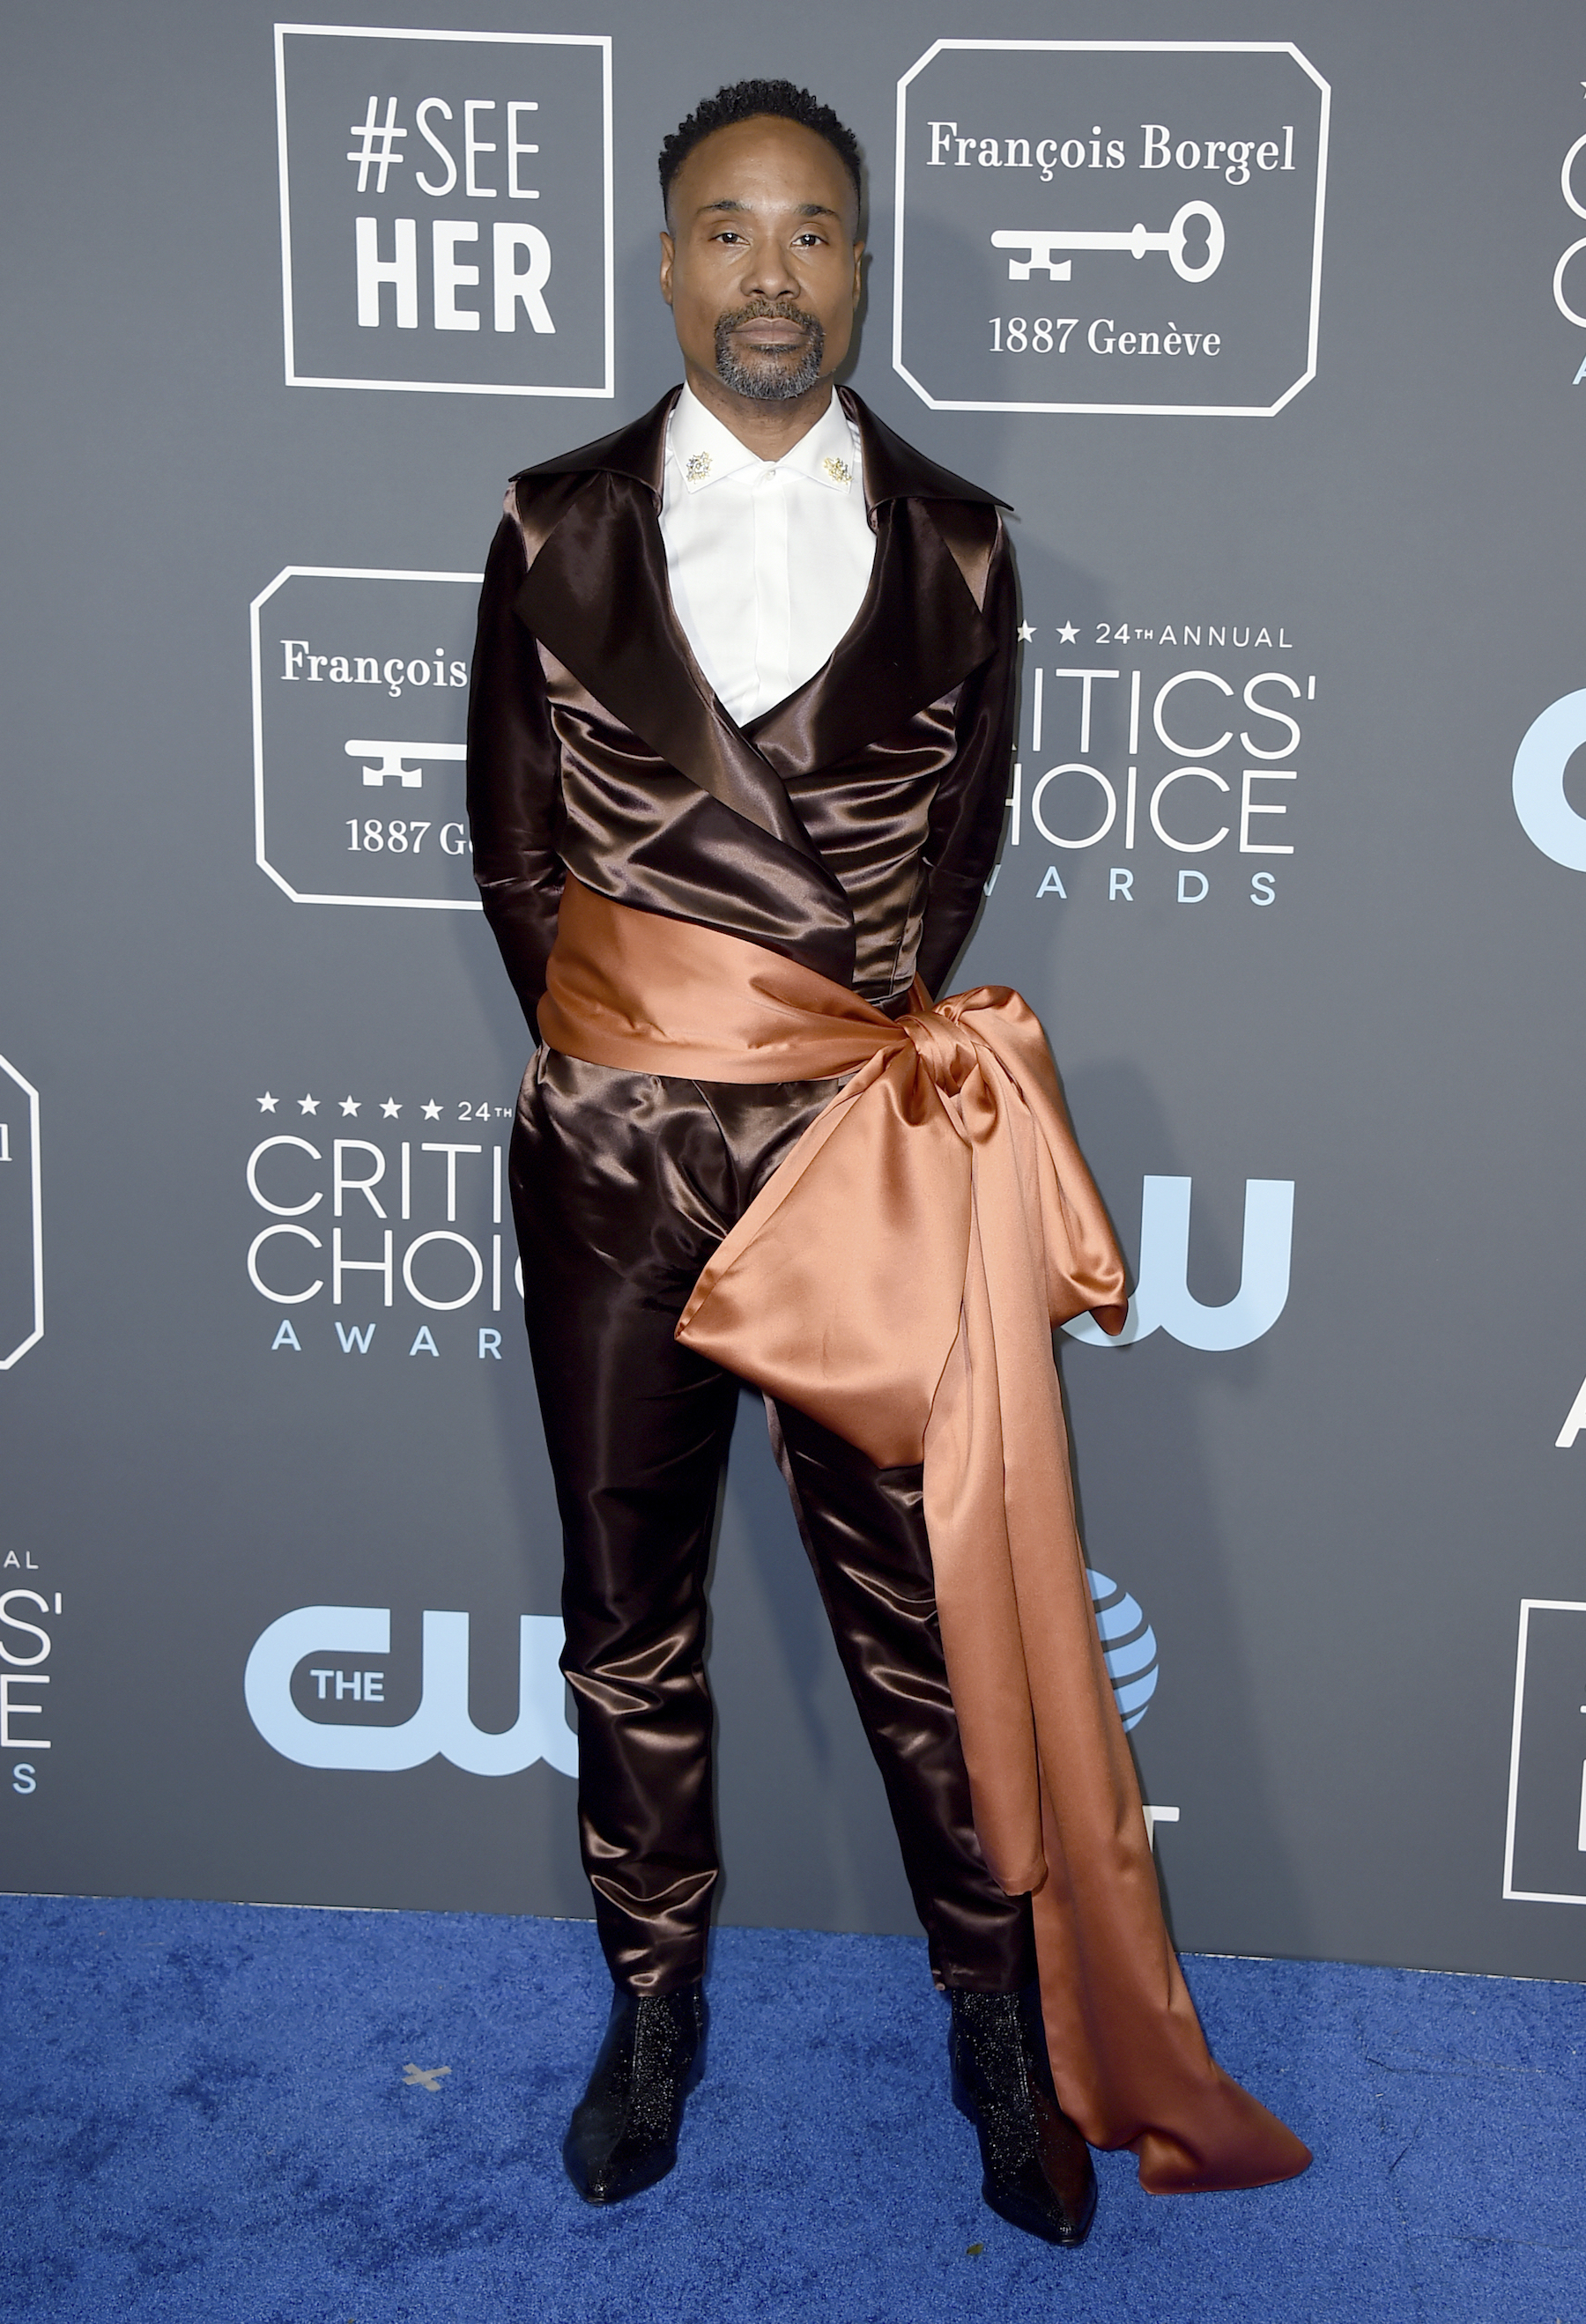 "<div class=""meta image-caption""><div class=""origin-logo origin-image ap""><span>AP</span></div><span class=""caption-text"">Billy Porter arrives at the 24th annual Critics' Choice Awards on Sunday, Jan. 13, 2019, at the Barker Hangar in Santa Monica, Calif. (Jordan Strauss/Invision/AP)</span></div>"